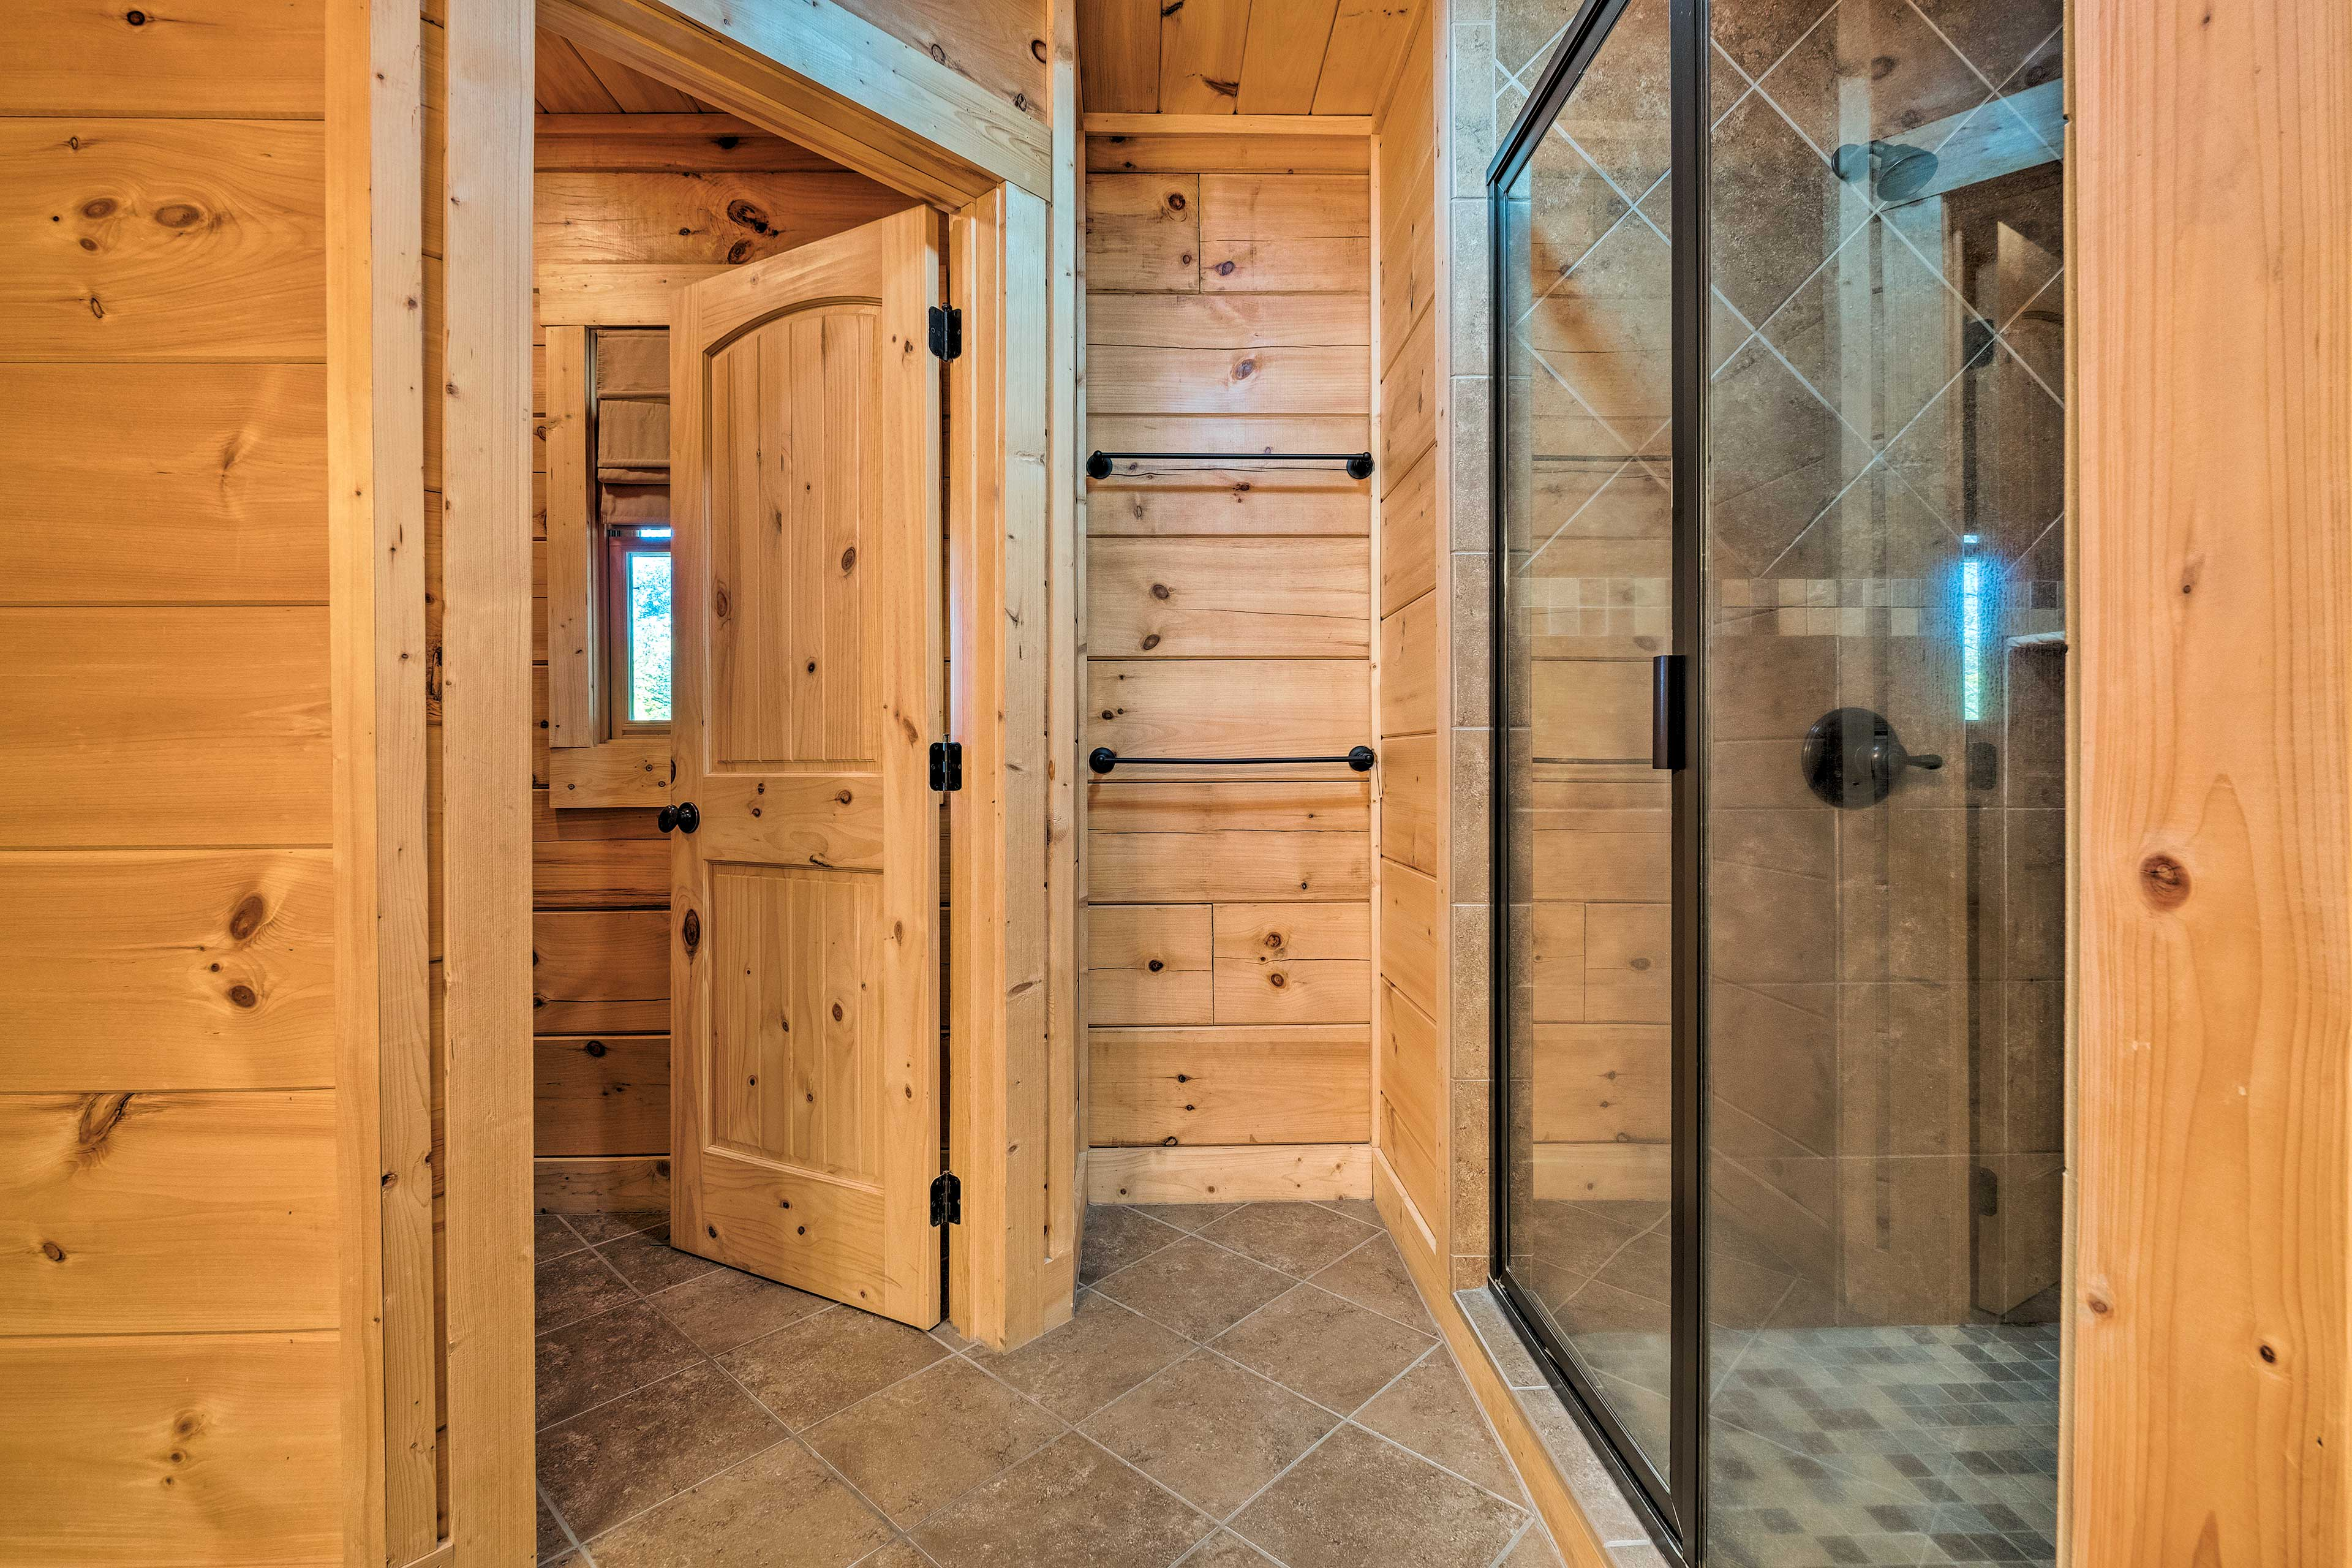 A walk-in shower is available as well.